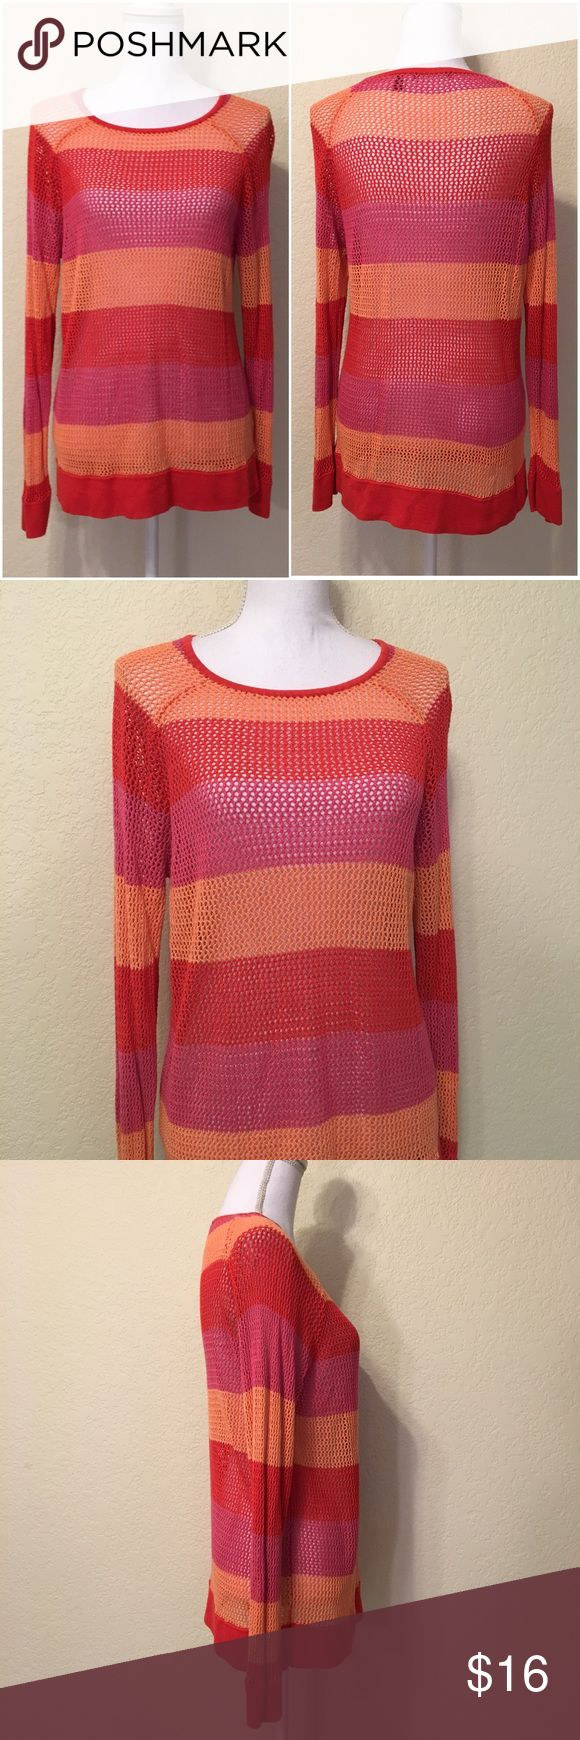 """525 America Coral Combo Knit Sweater 525 America Coral Combo Knit Sweater.  Size XL.  Excellent like-new condition.  Ribbed cuffs and trim.  Side hook & zipper.  Length shoulder to hem: 28"""".  Bust: 40"""".  Waist: 38.  Bottom of sweater: 40"""" around.  Sleeve length: 25"""".  Cuff width: 4"""".  100% rayon.  Machine wash cold. 525 America Sweaters Crew & Scoop Necks"""